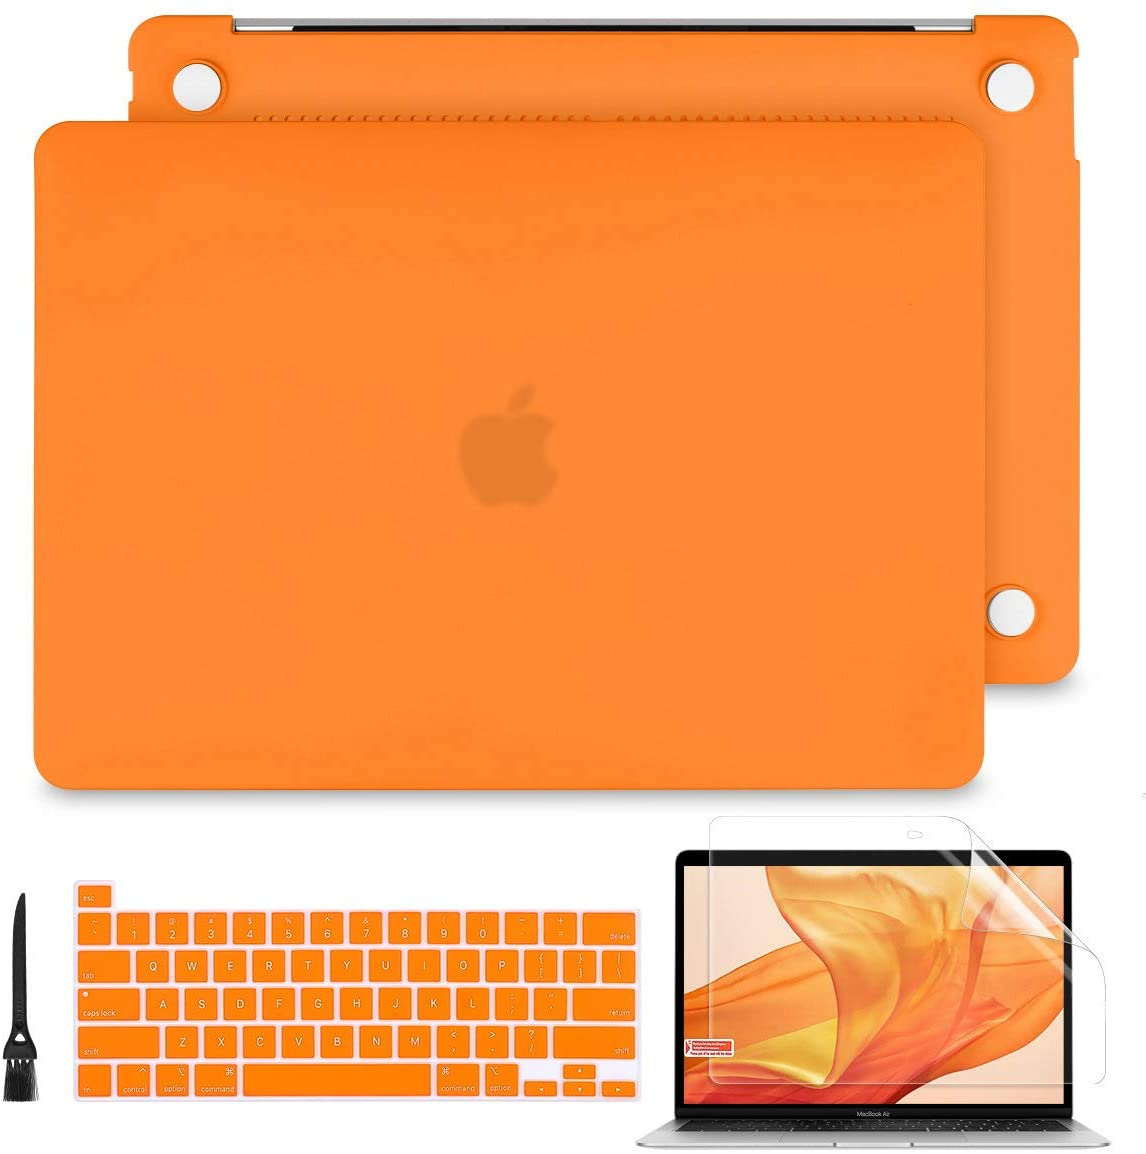 Batianda Hard Case for MacBook Pro 13 2020 Release A2289/A2251 Printing Rubberized Hard Shell Case Cover+Keyboard Cover + Screen Protector for NewMacBook Pro 13 Inch Touch Bar, Matte Orange